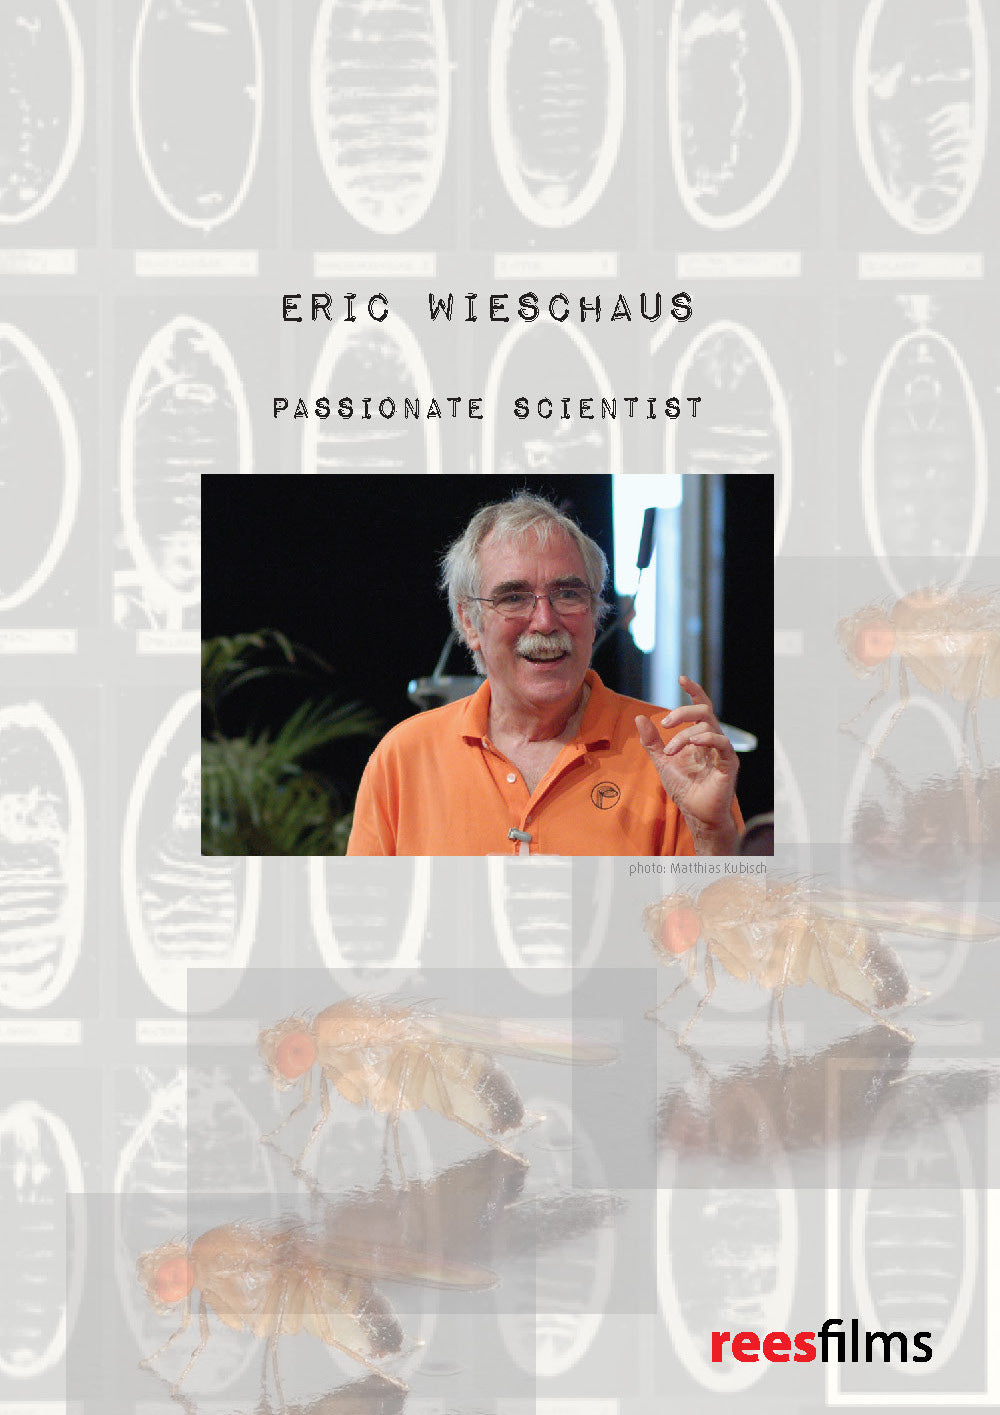 Eric Weischaus: passionate scientist